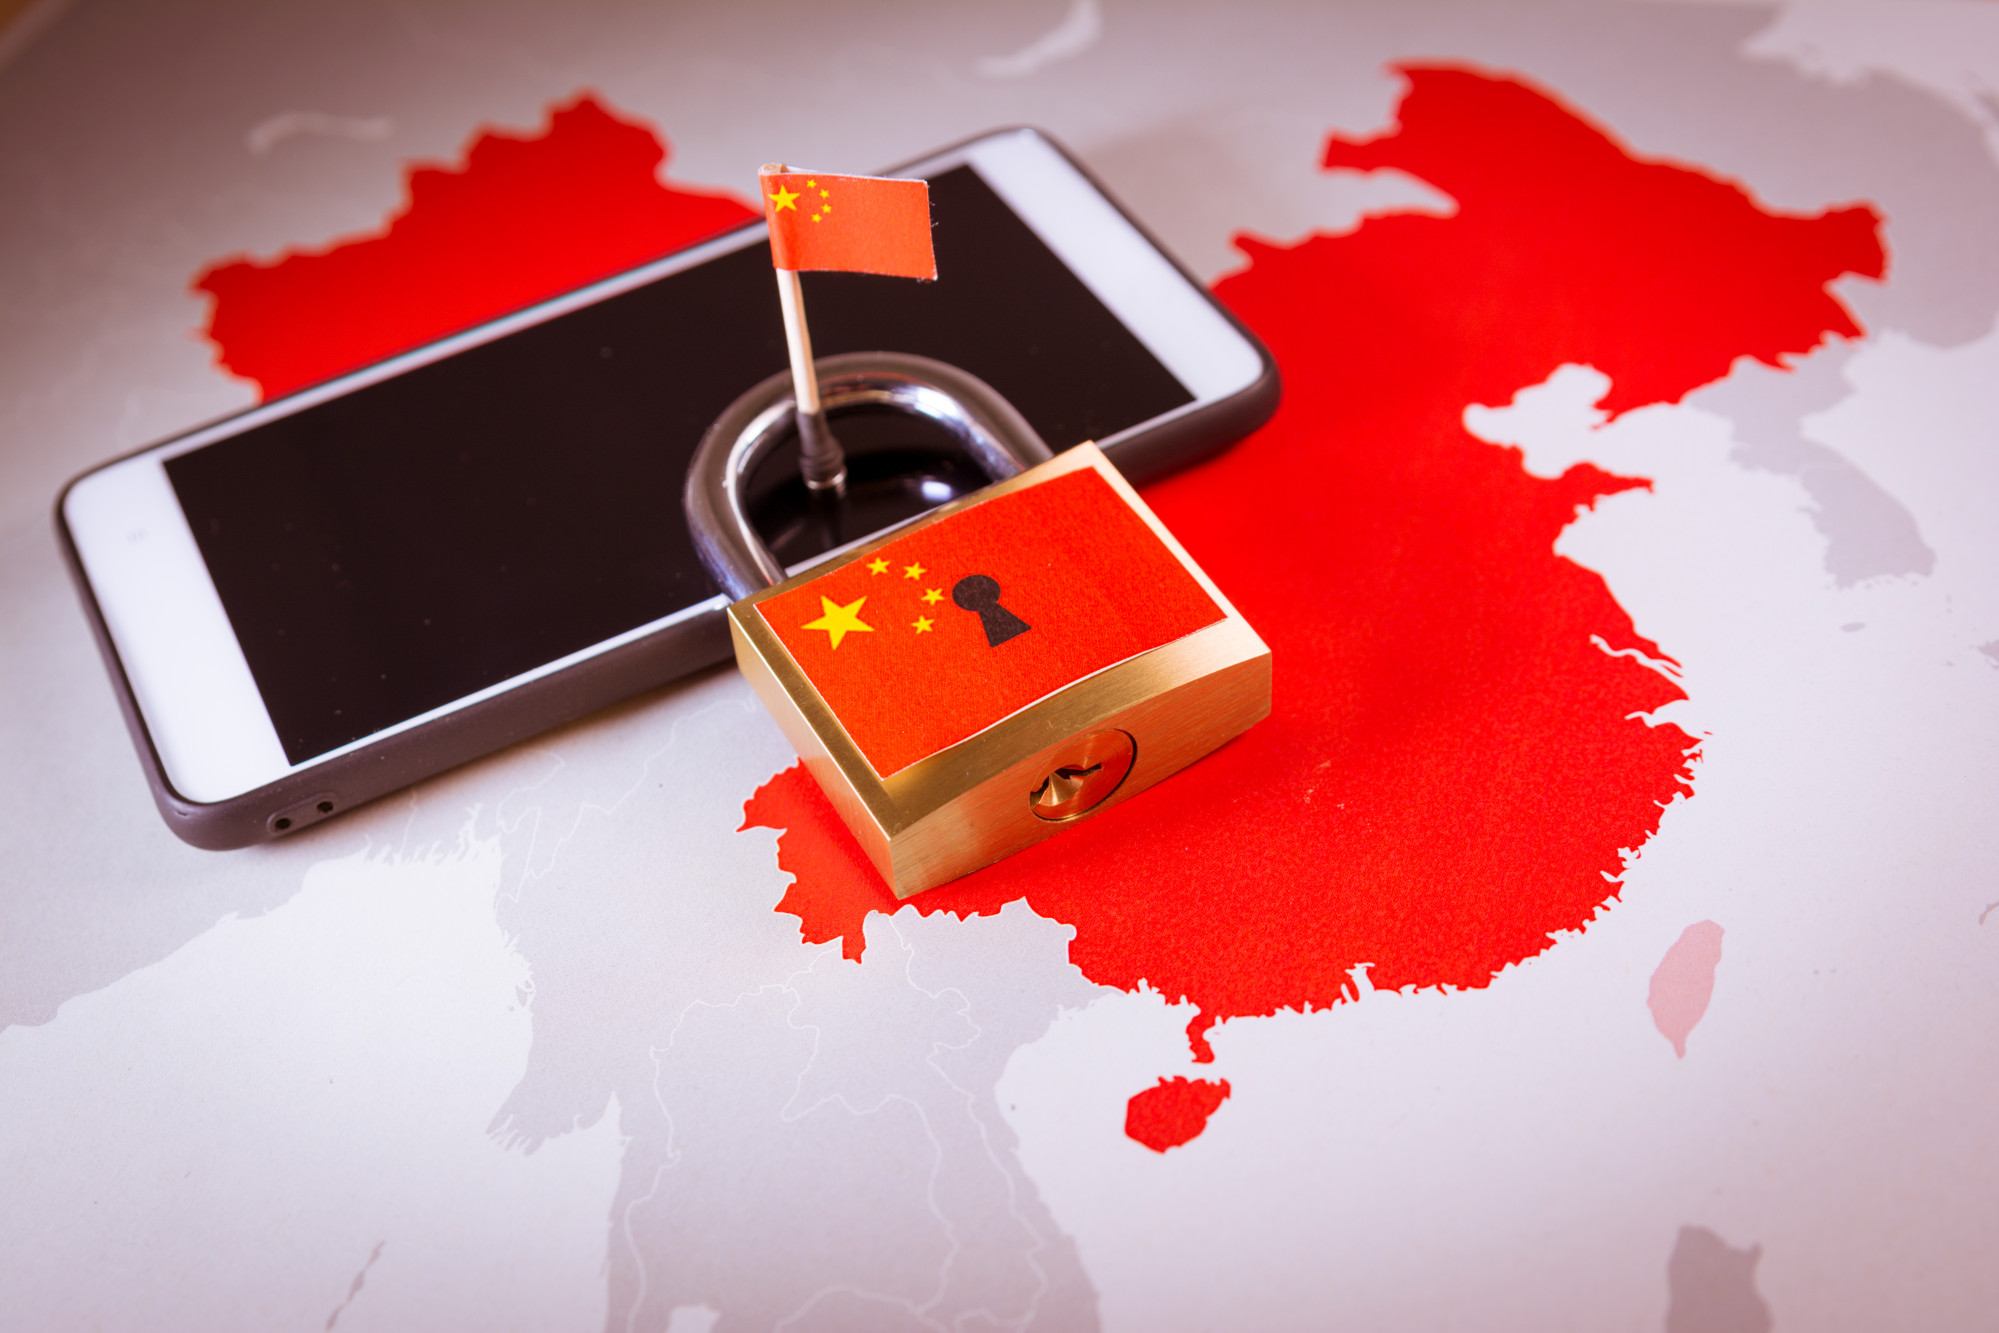 Many sites are blocked in China including Google, Facebook, Twitter and some foreign news outlets. Photo: Shutterstock